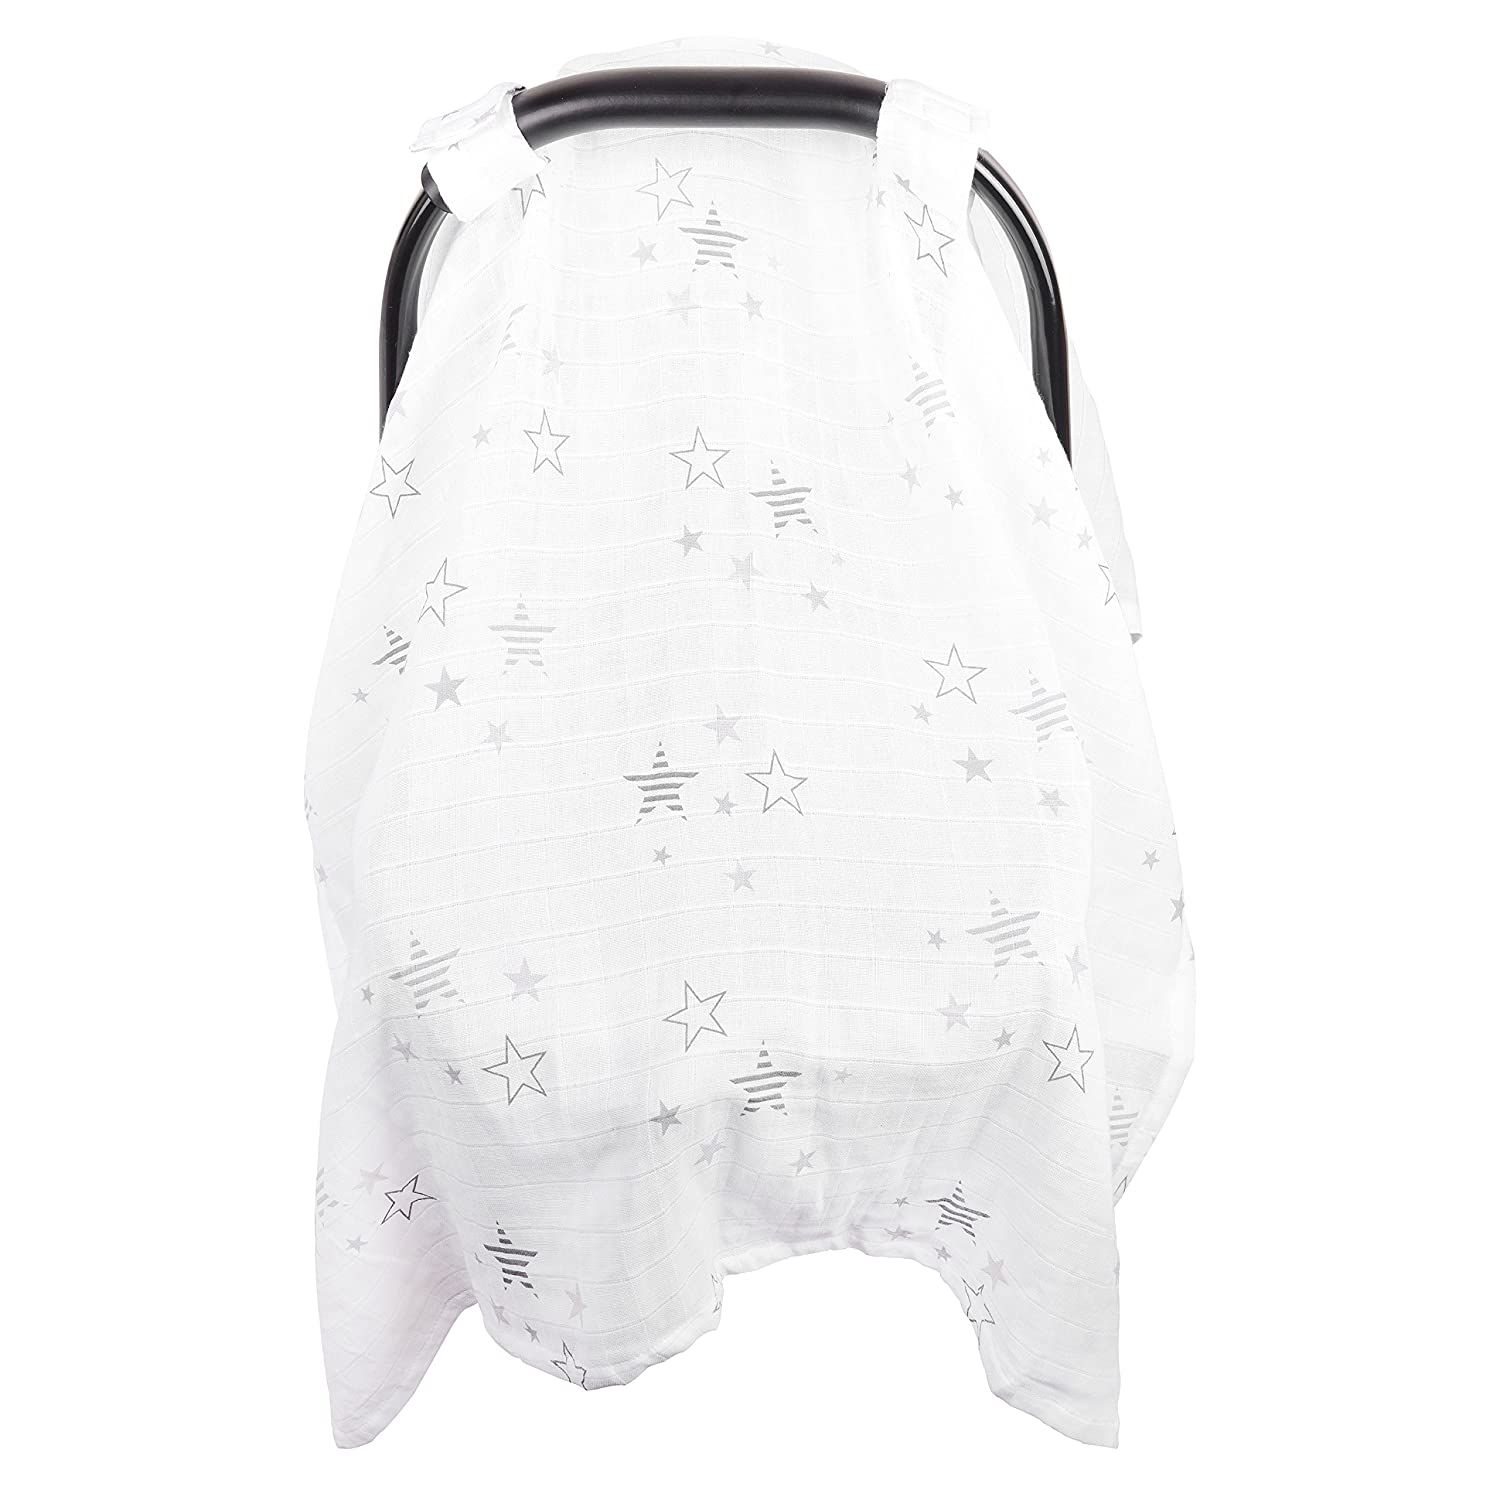 Jomolly Baby Car Seat Cover